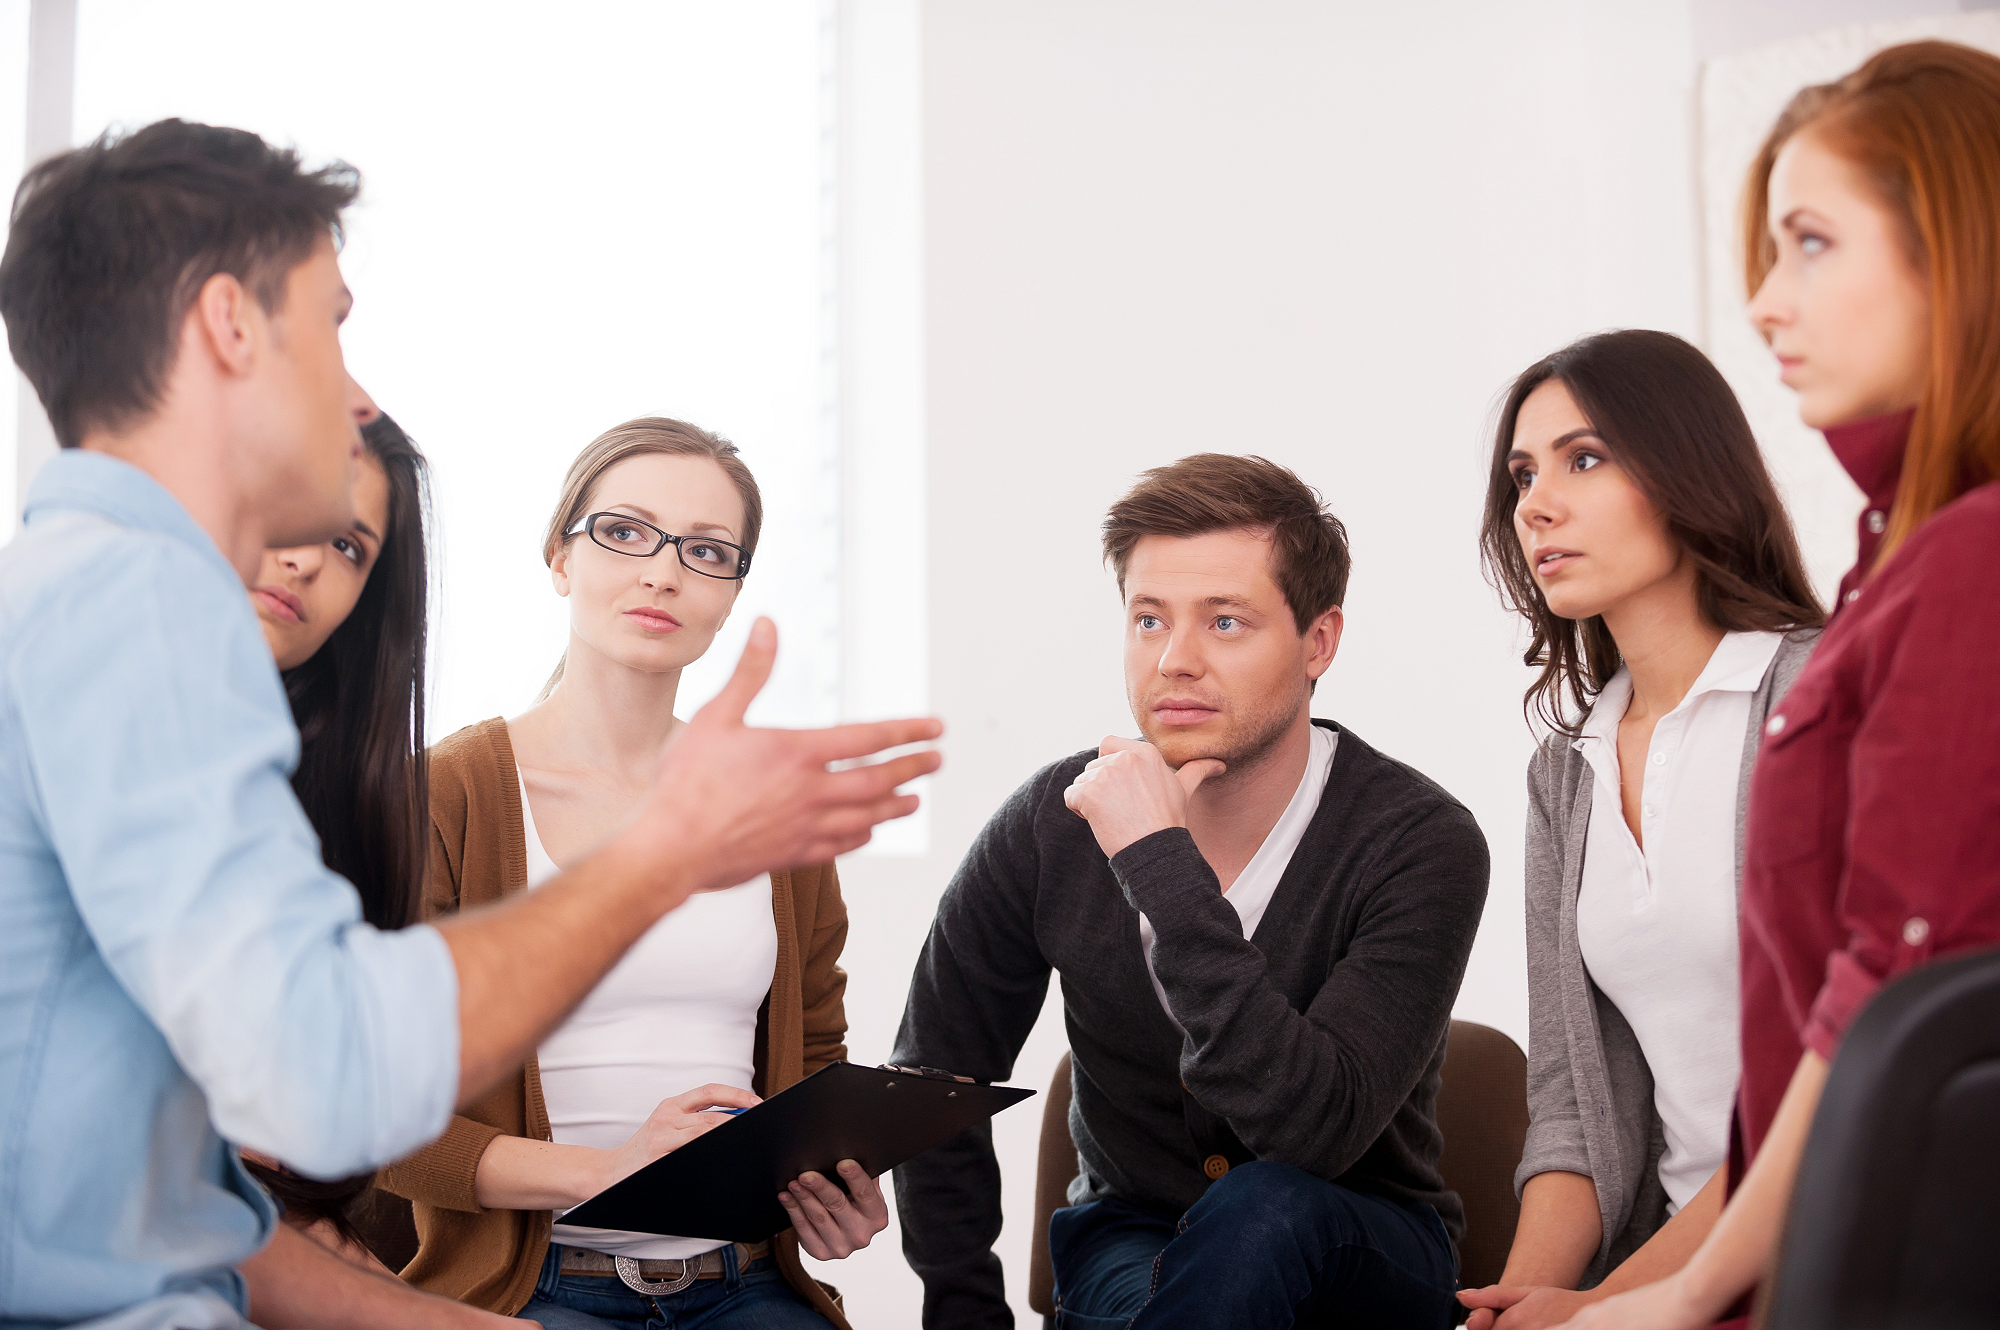 Group Of Students Talking Royalty Free Stock Photo - Image ... |Group Talking